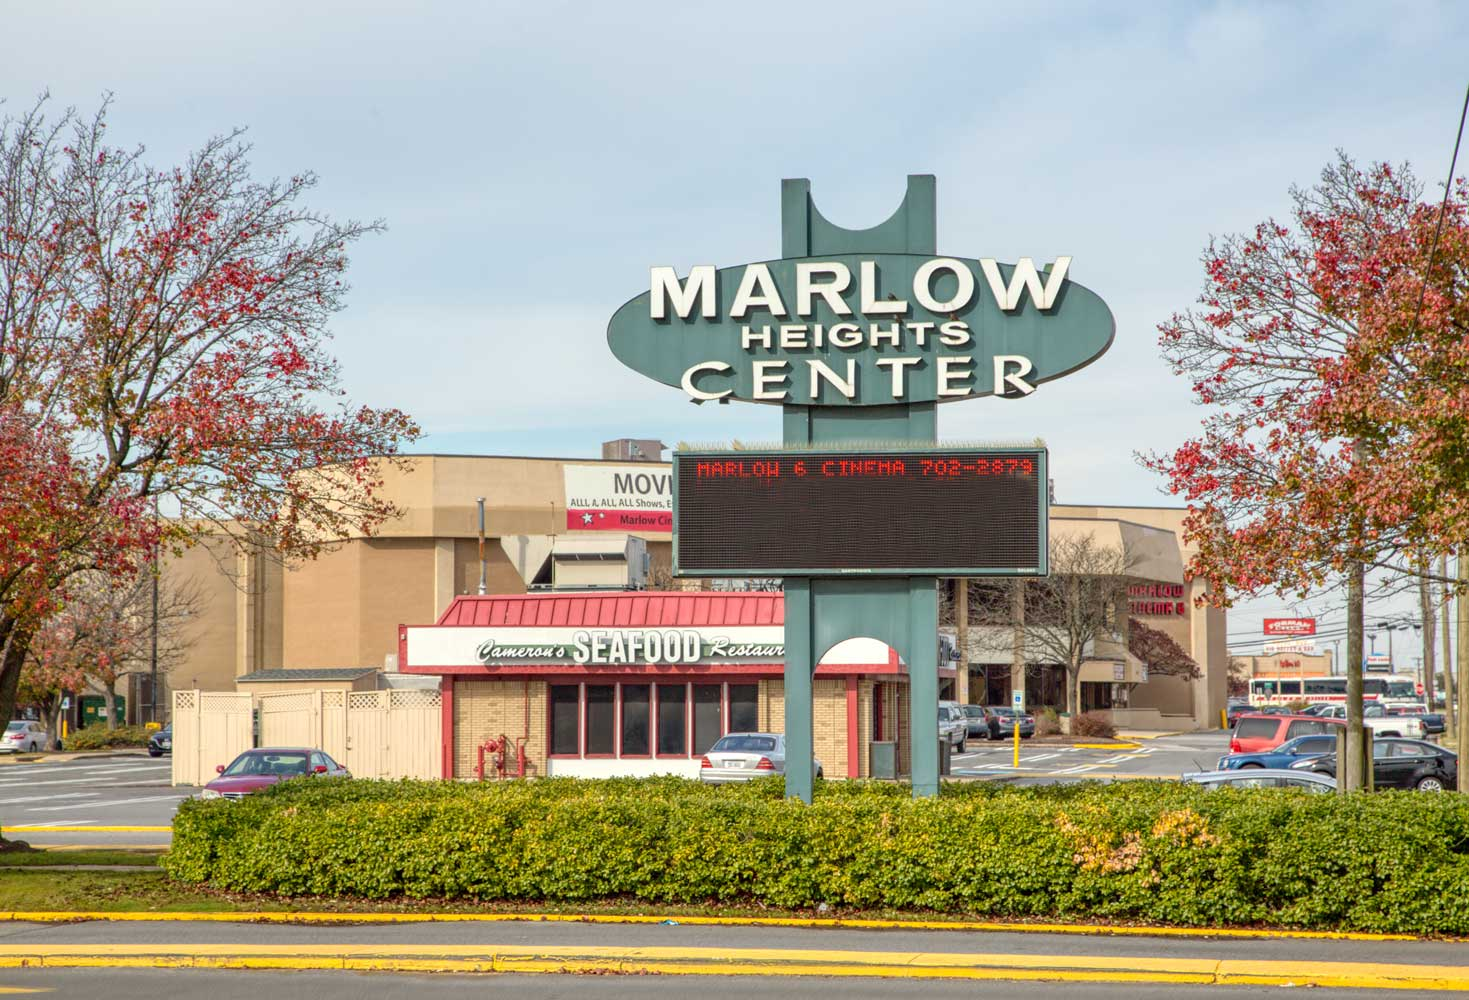 Marlow Heights Shopping Center is 5 minutes from Top of the Hill Apartments